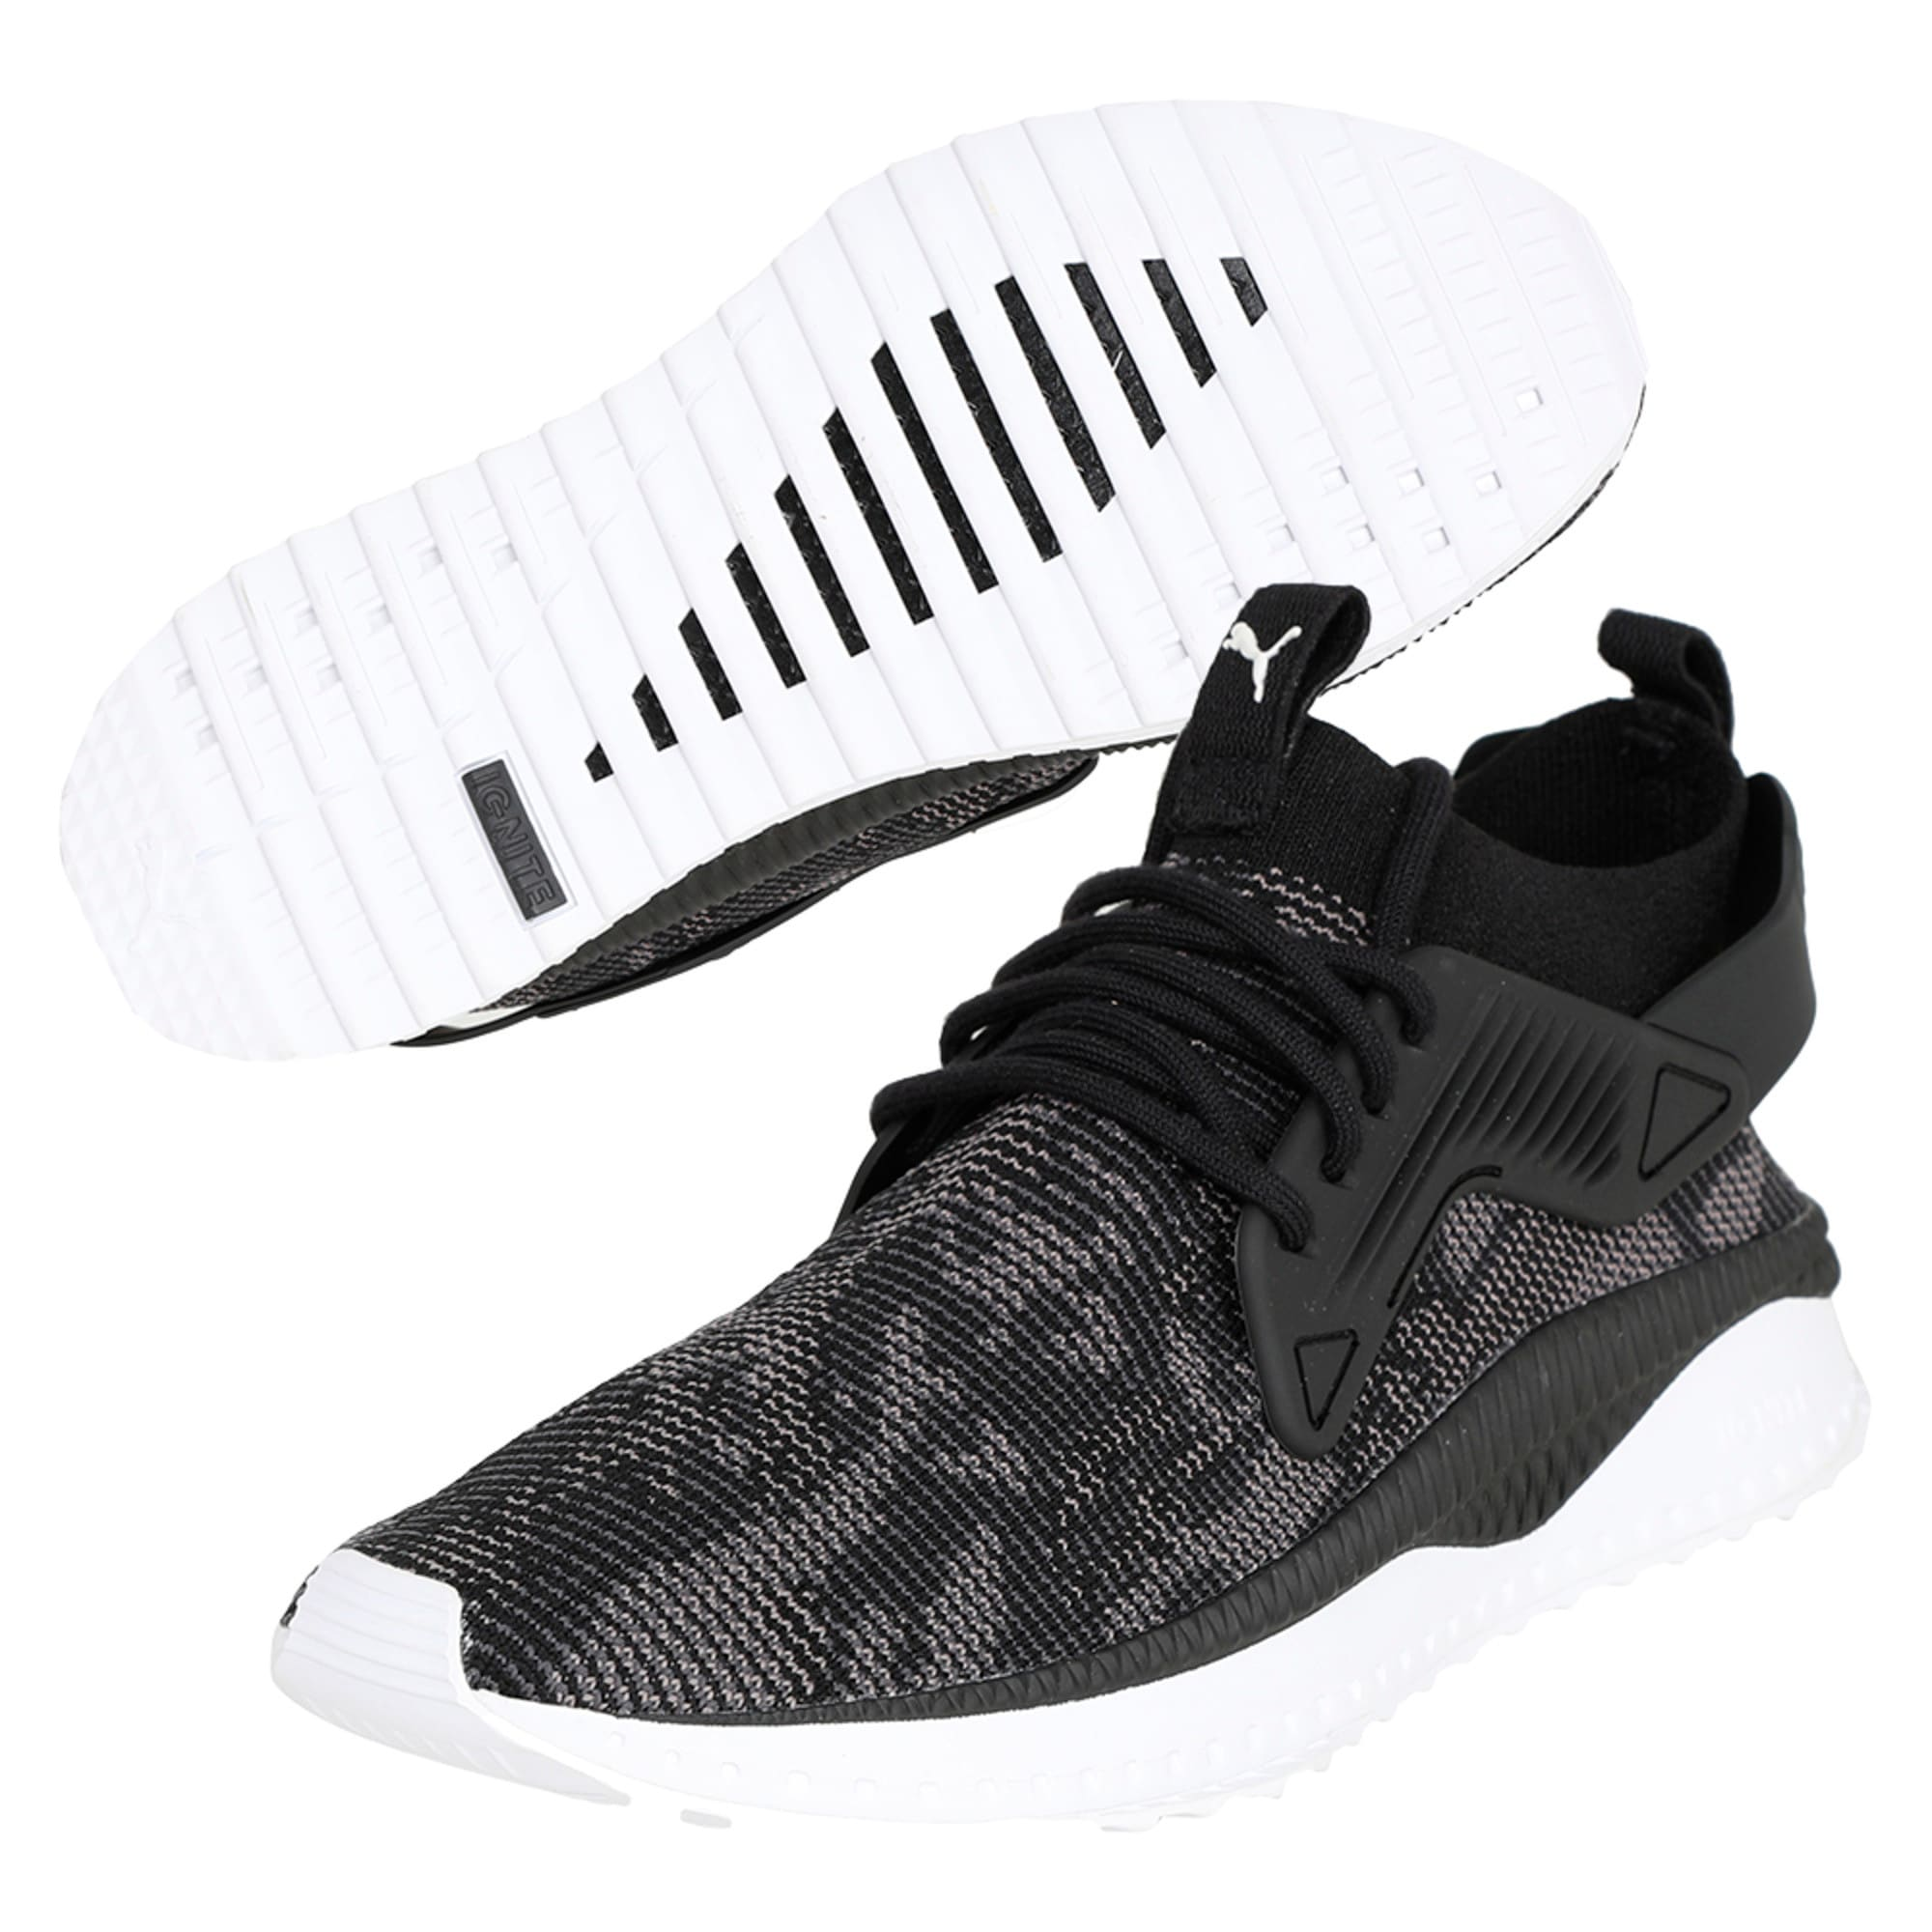 Thumbnail 6 of TSUGI Cage evoKNIT WF Trainers, Puma Black-Puma White-, medium-IND